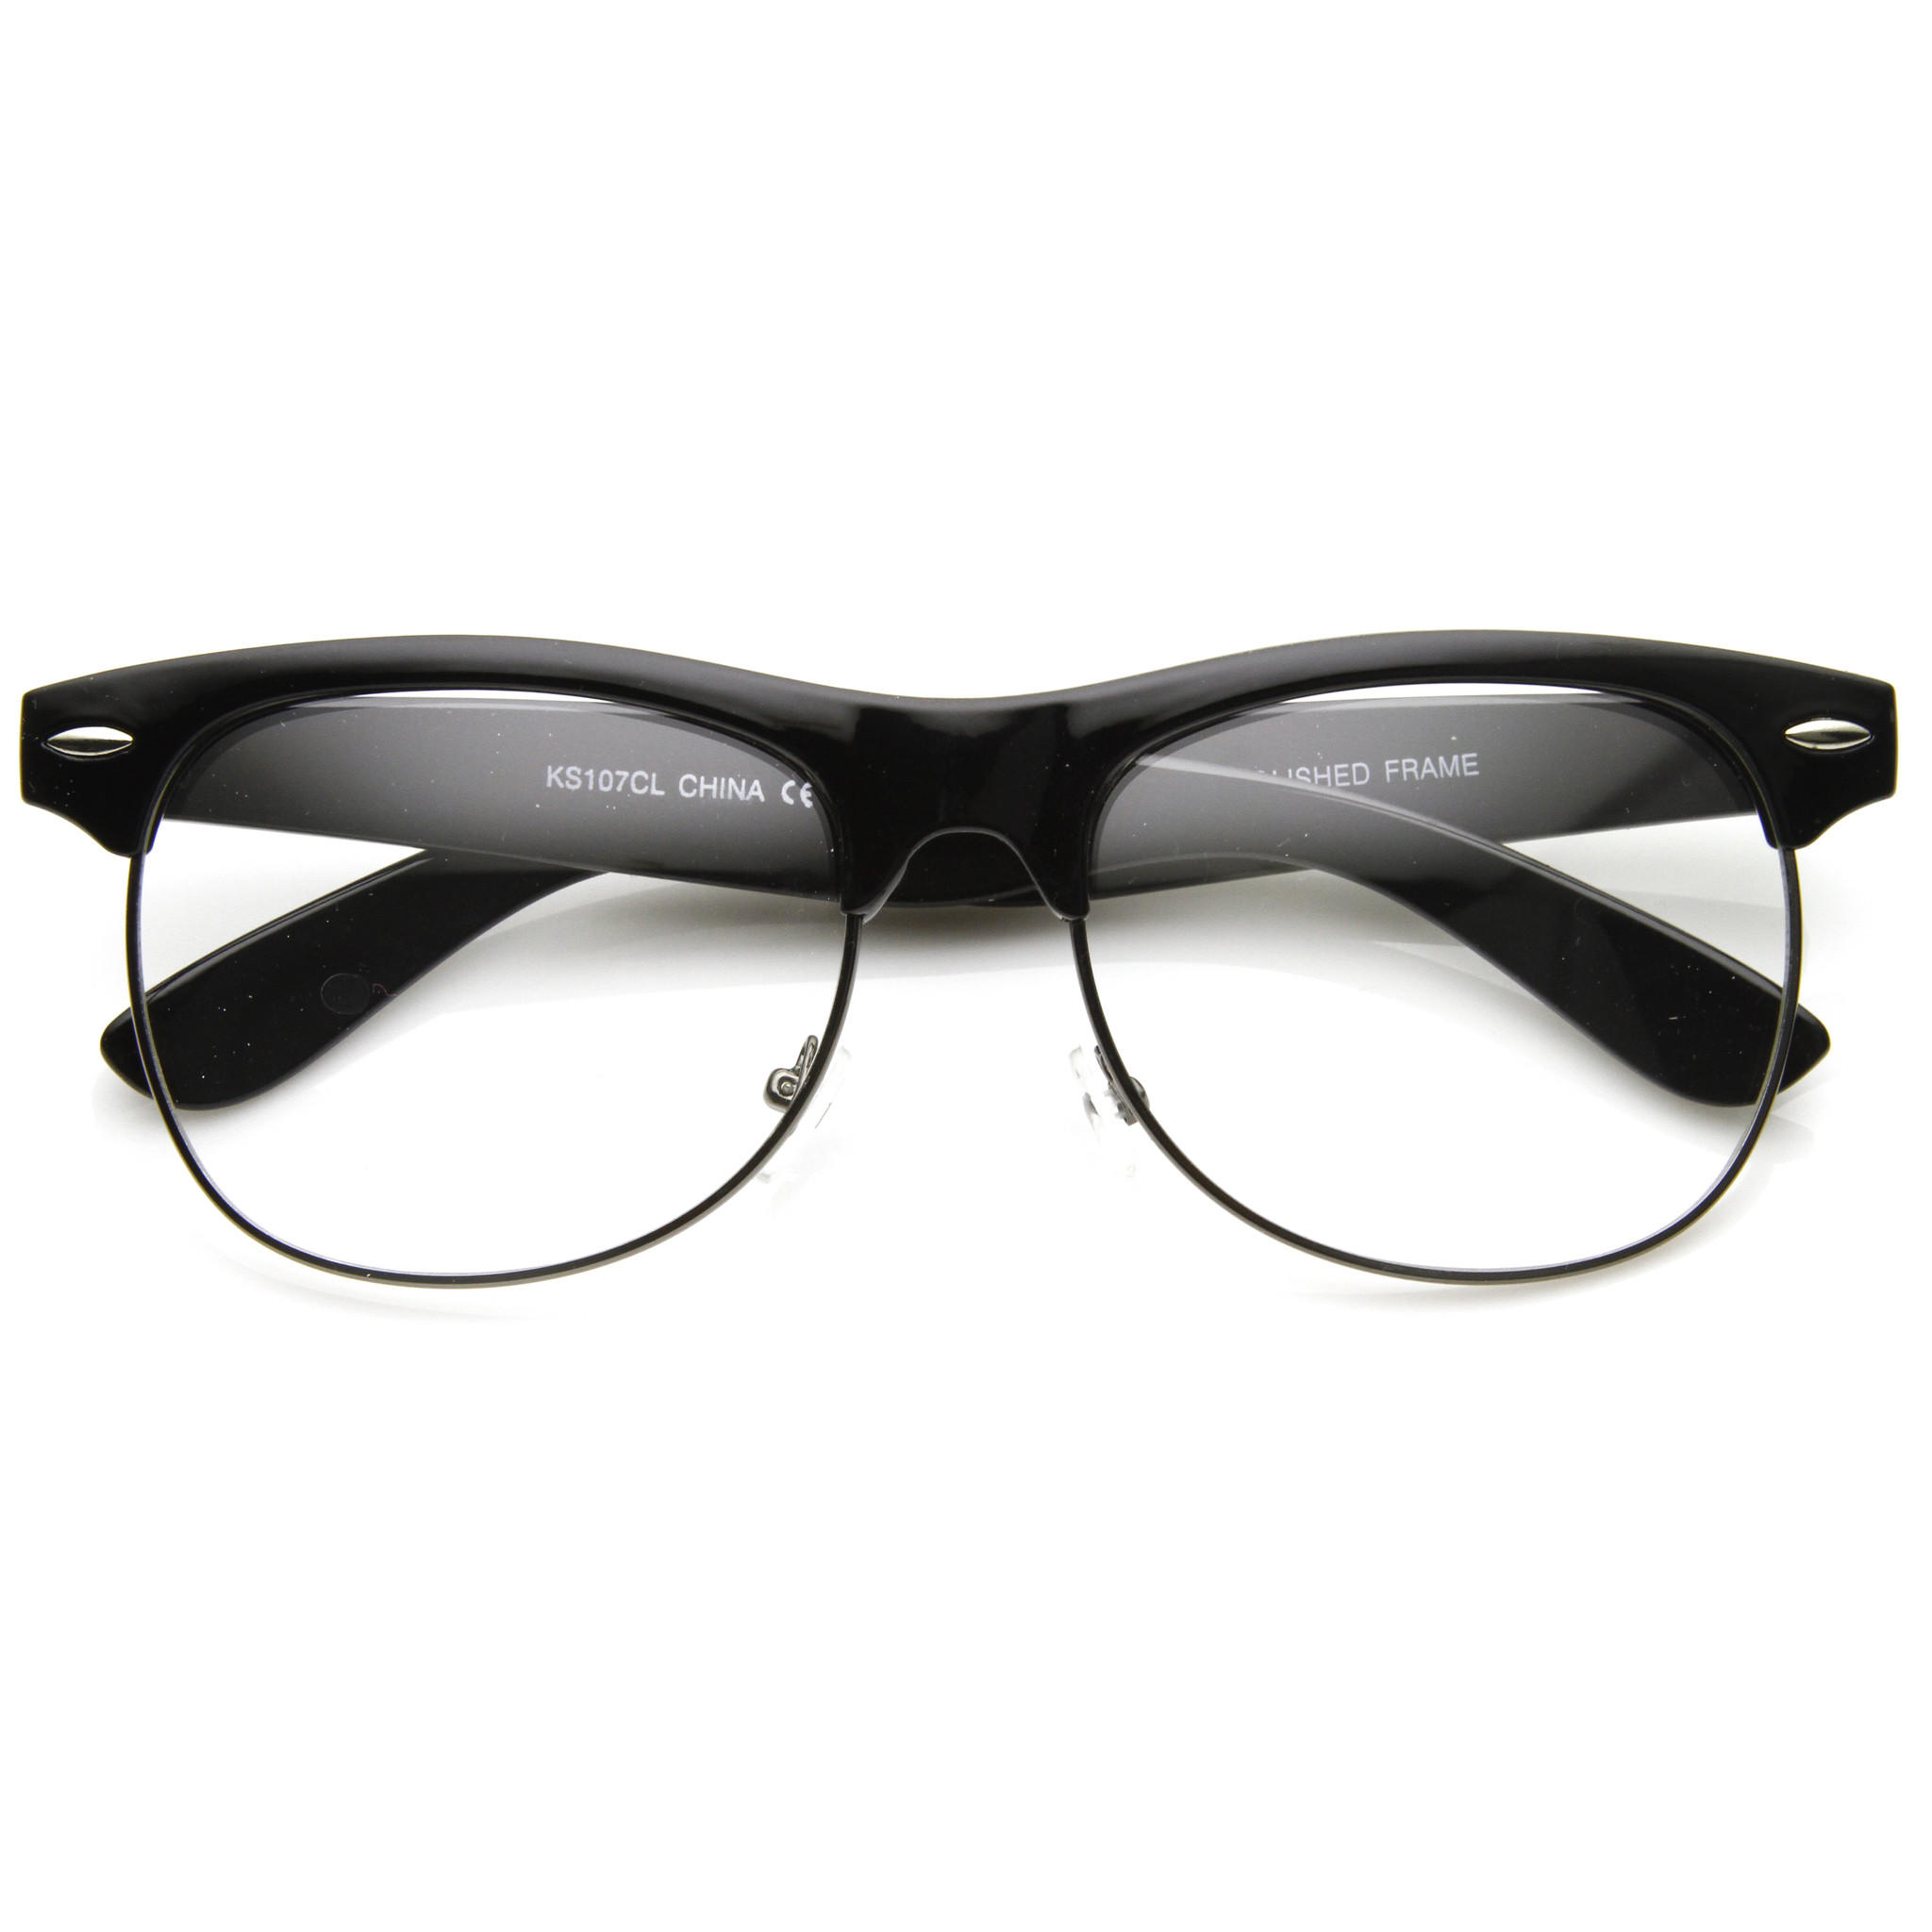 Image of Retro Classic Half Frame Clear Lens Glasses 8846